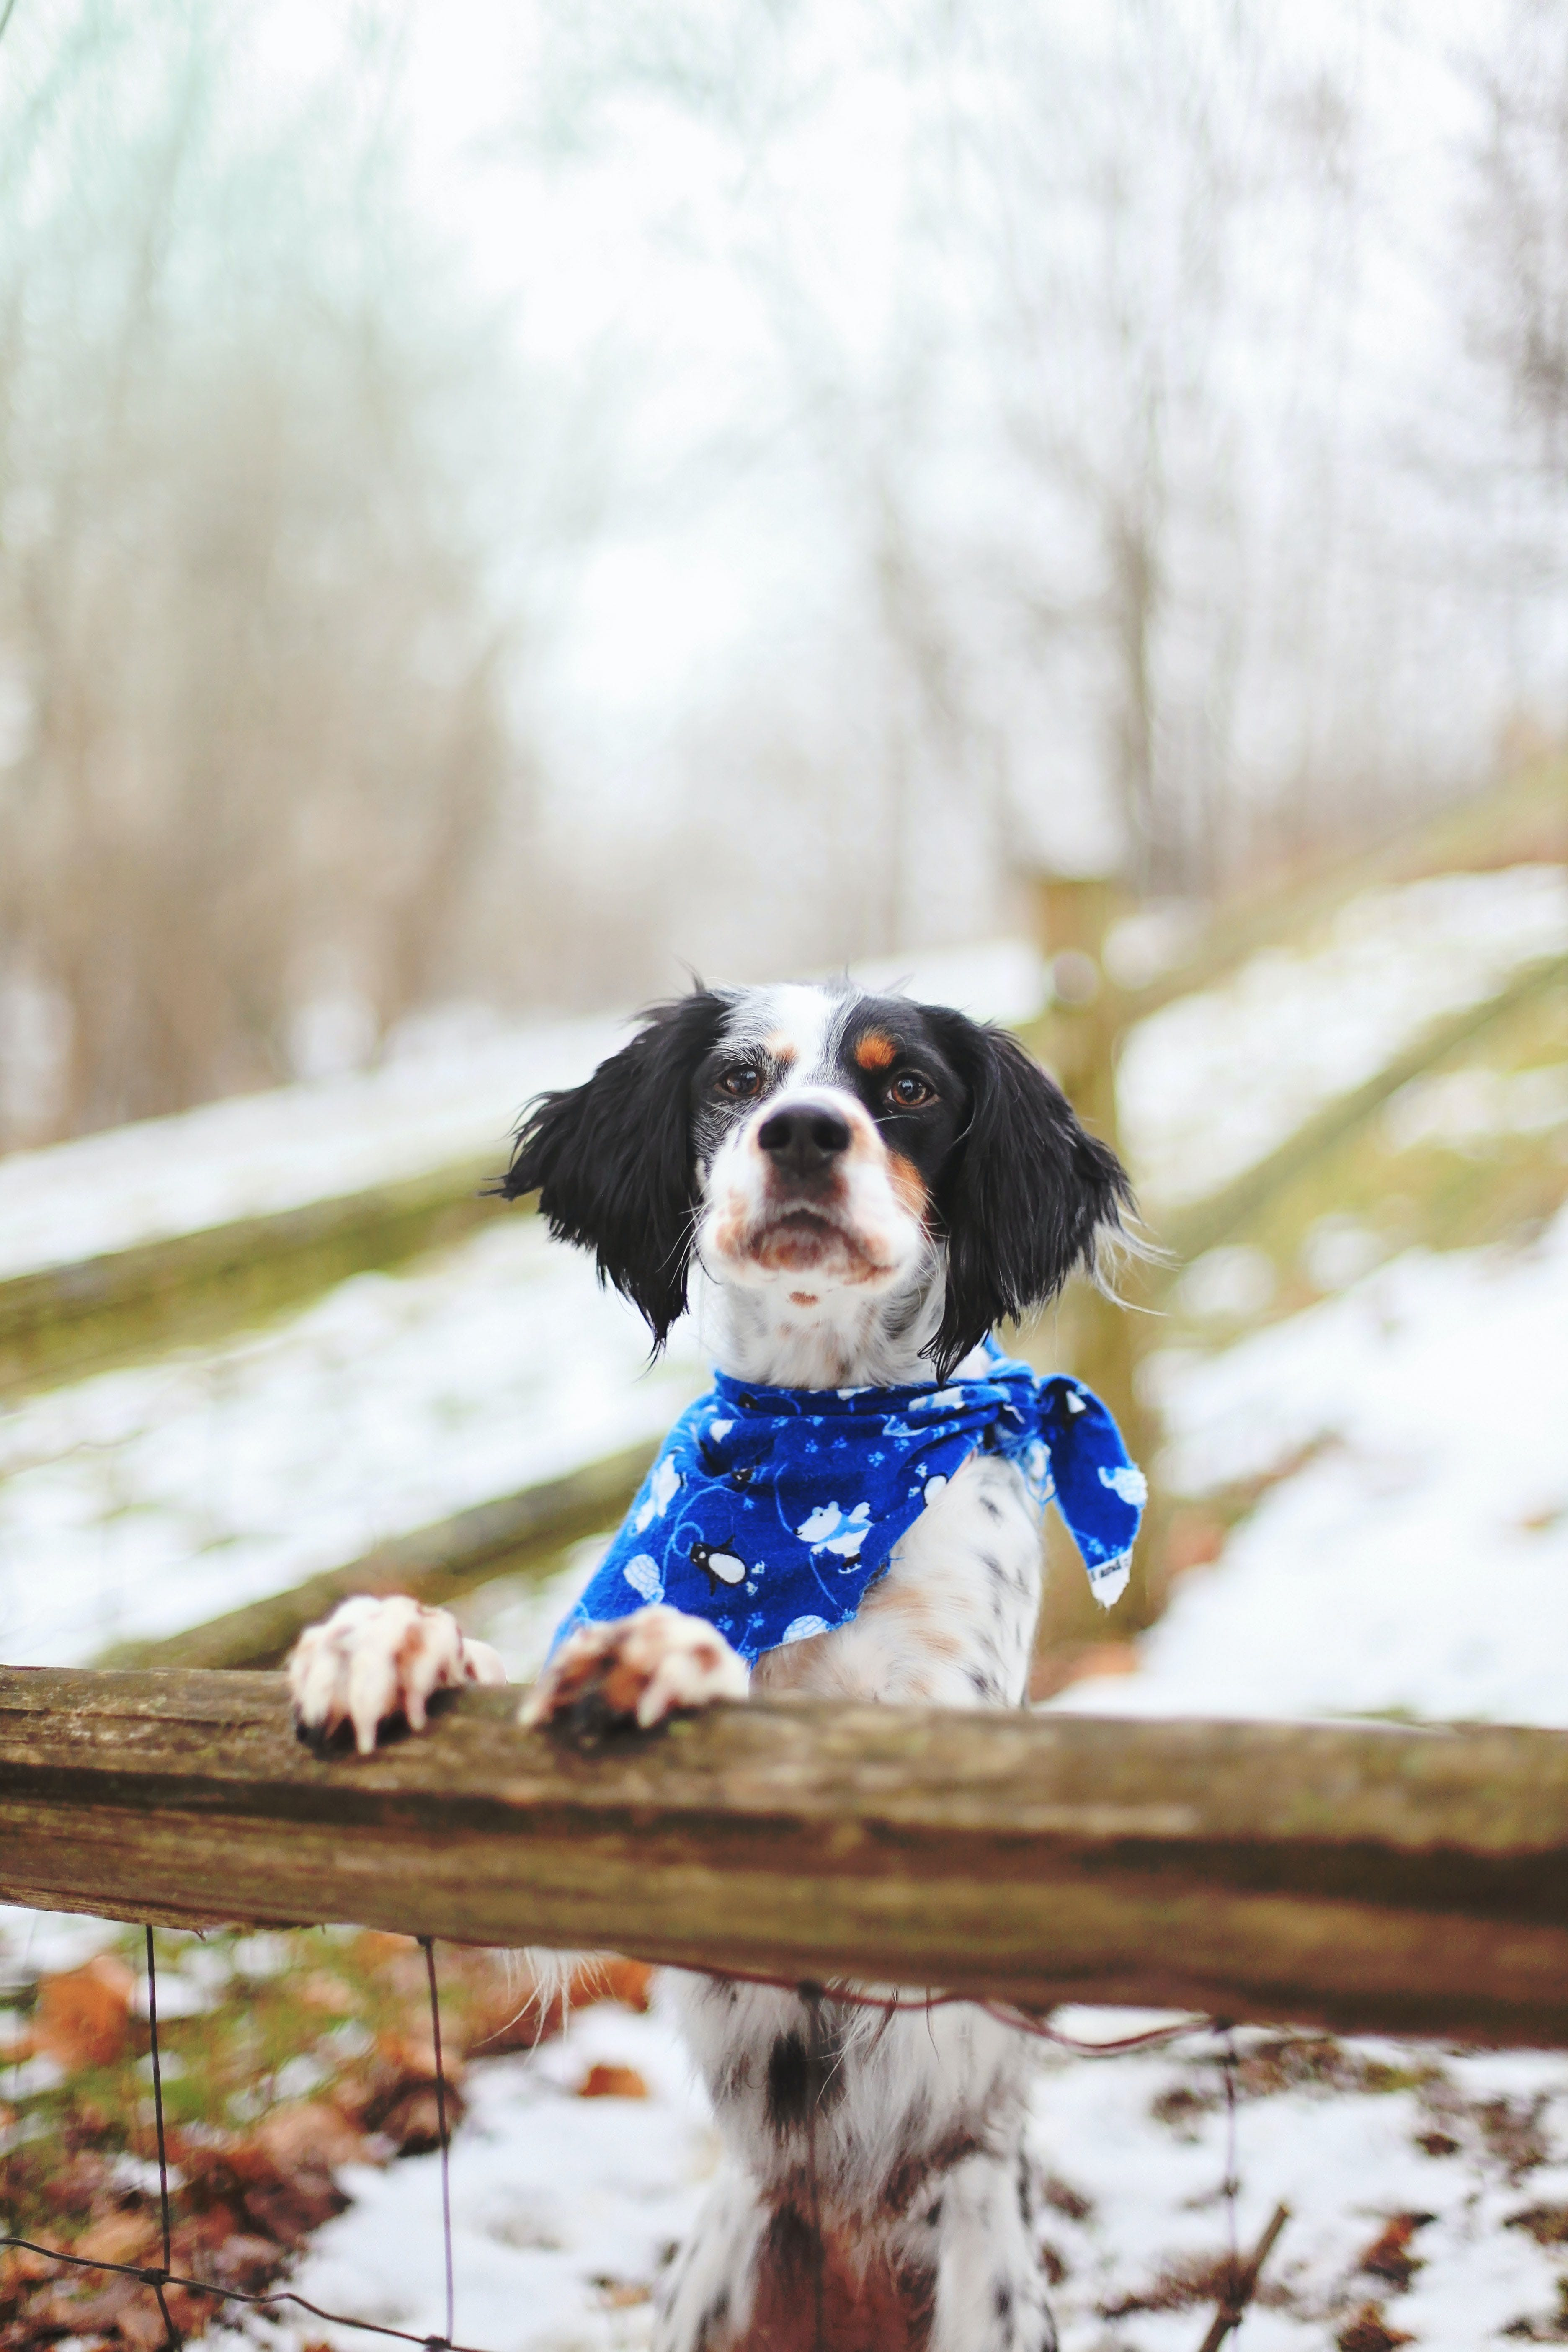 Long-coated Dog Hang on Wooden Fence Selective Focus Photography